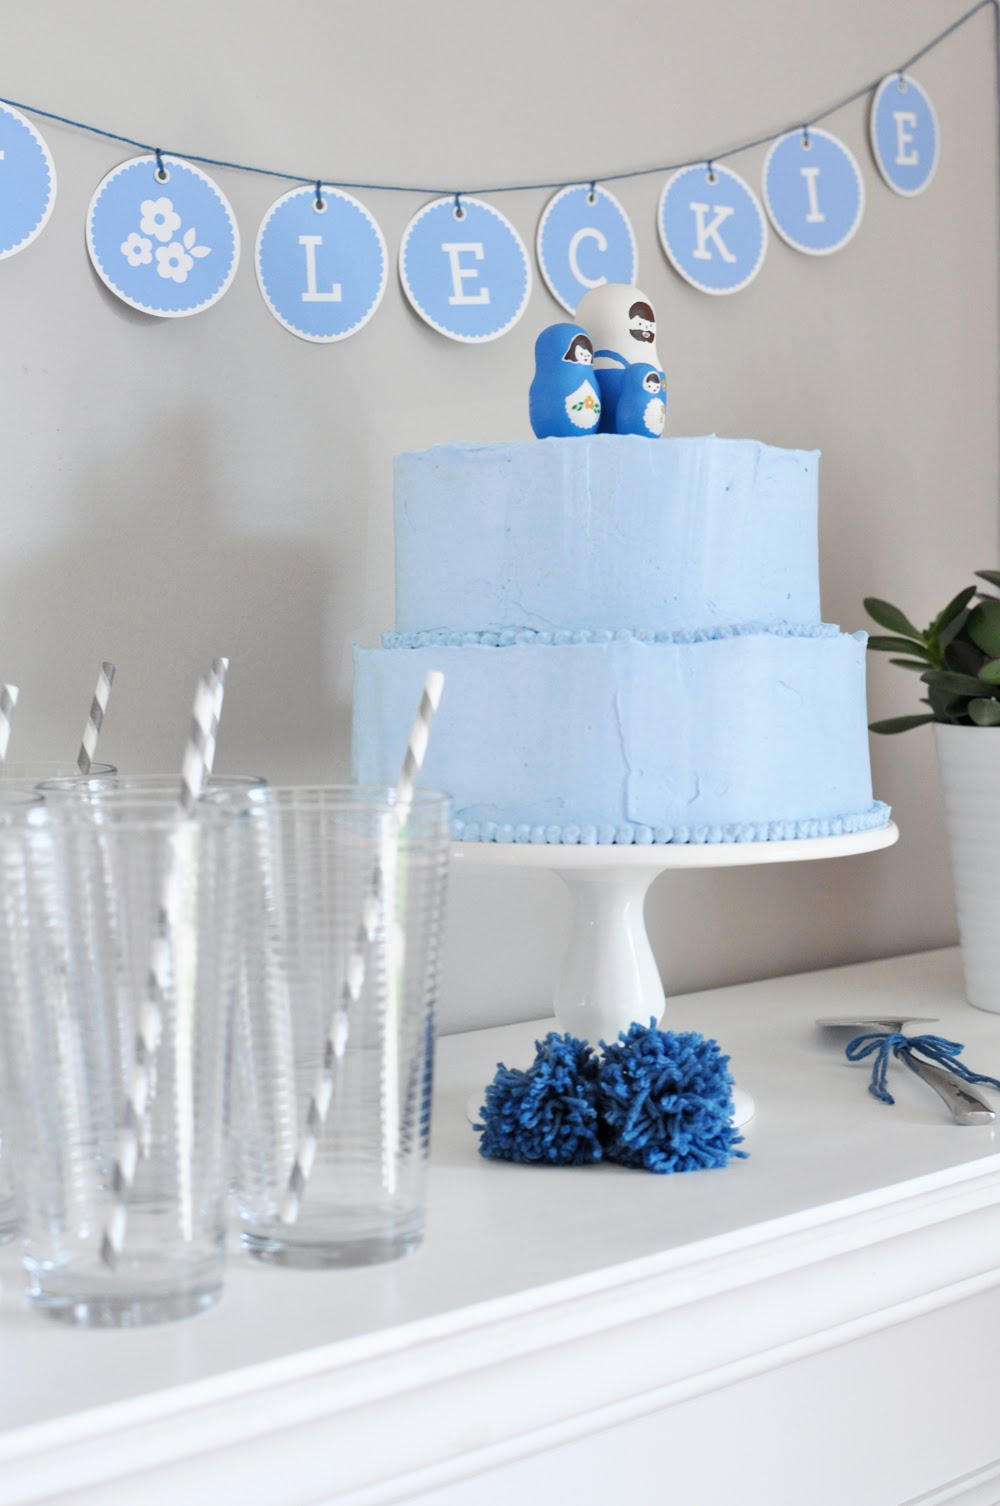 twig thistle sent over the cutest images of a recent baby shower